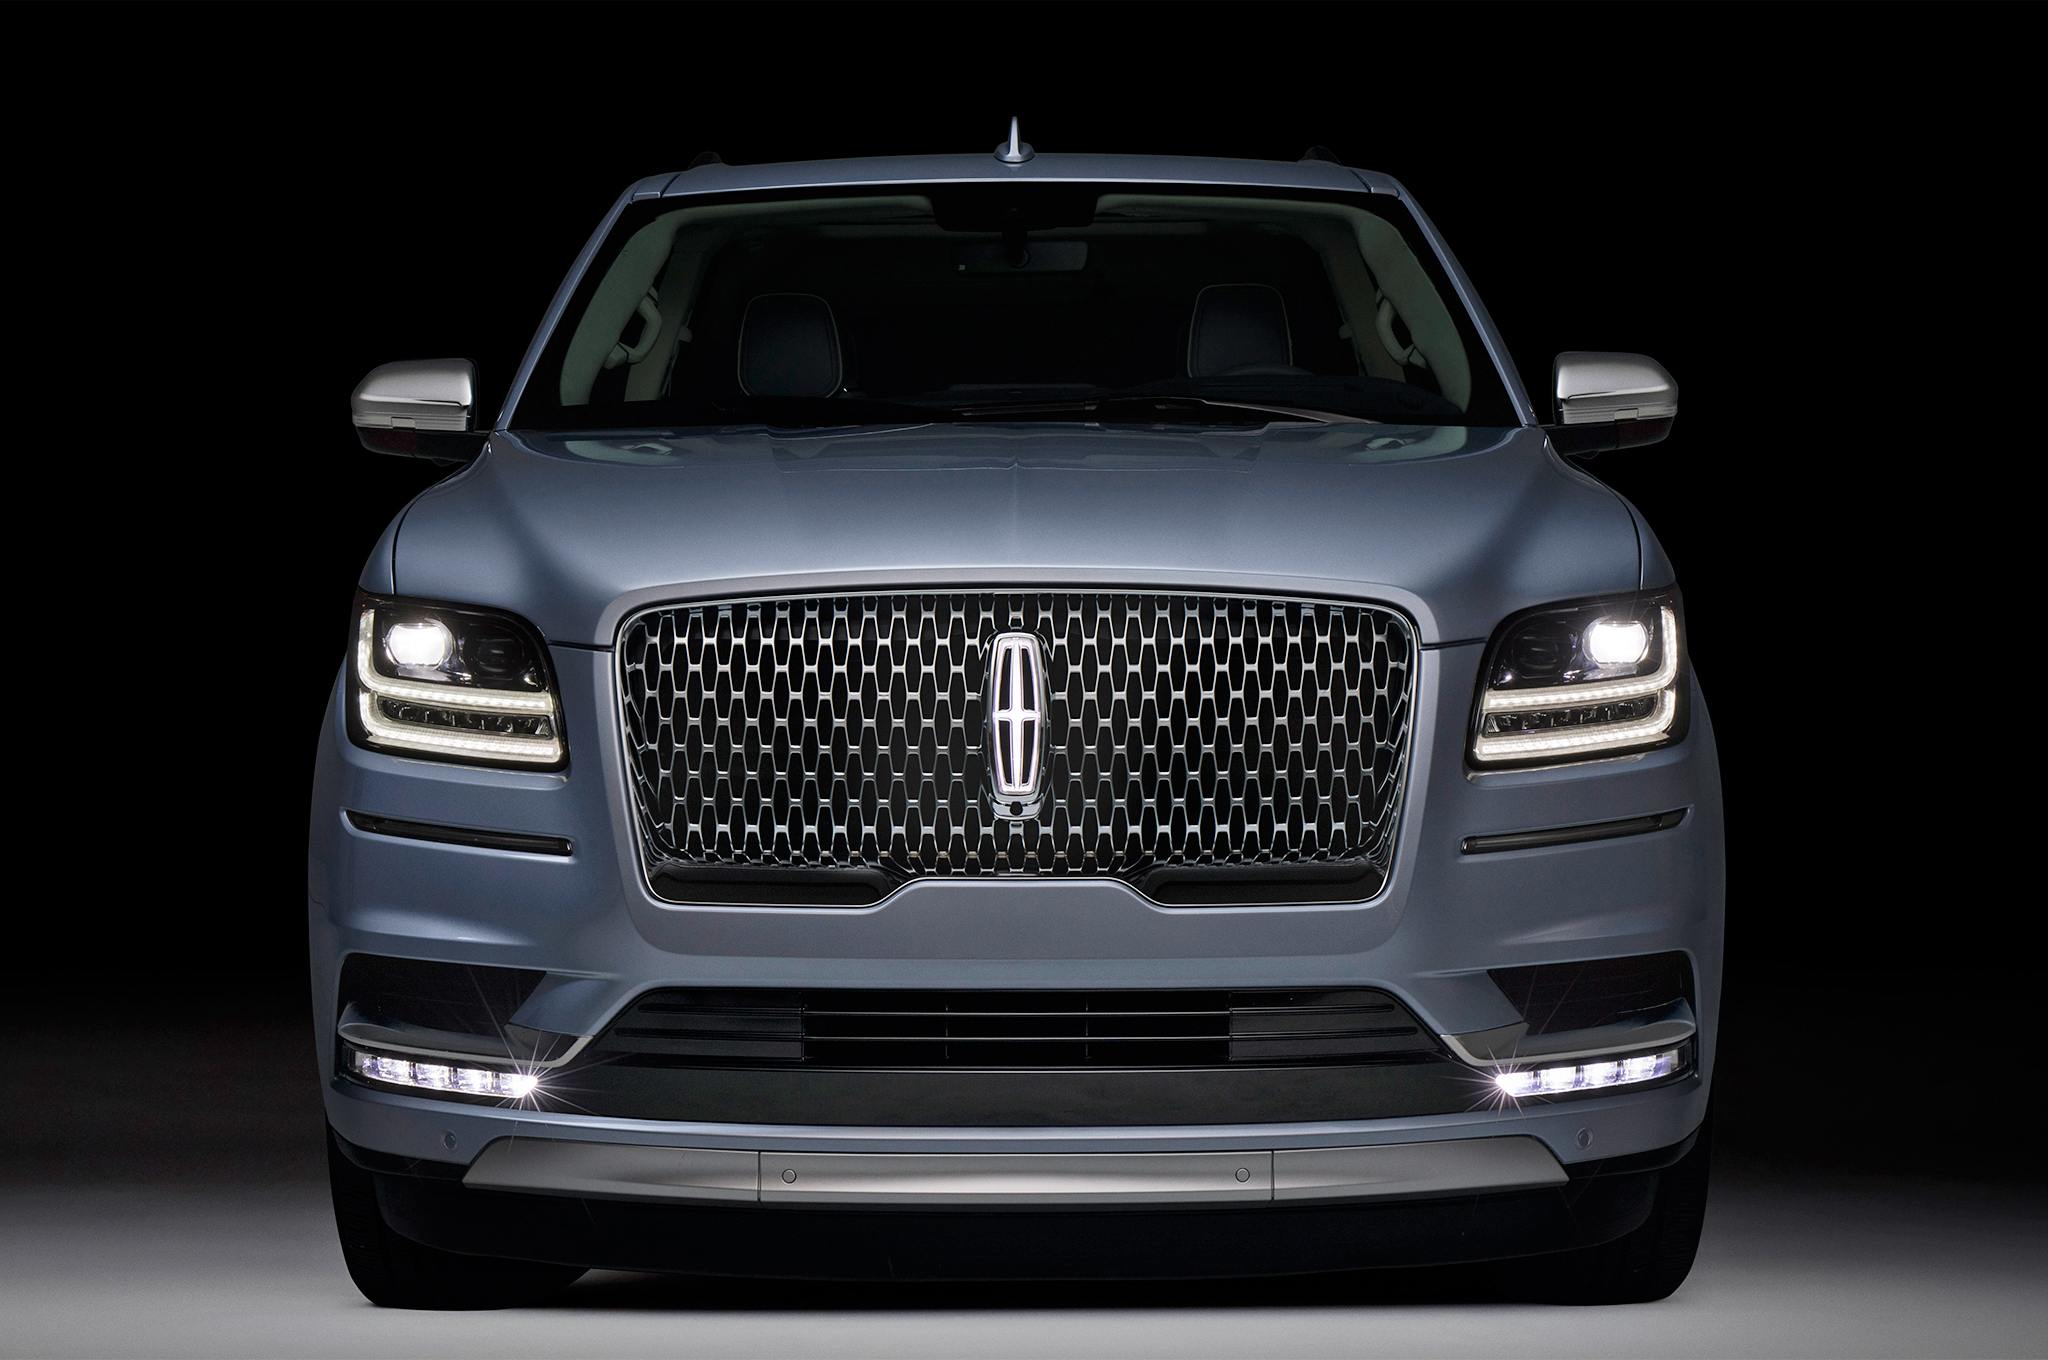 2018-Lincoln-Navigator-front-end-headlights.jpg